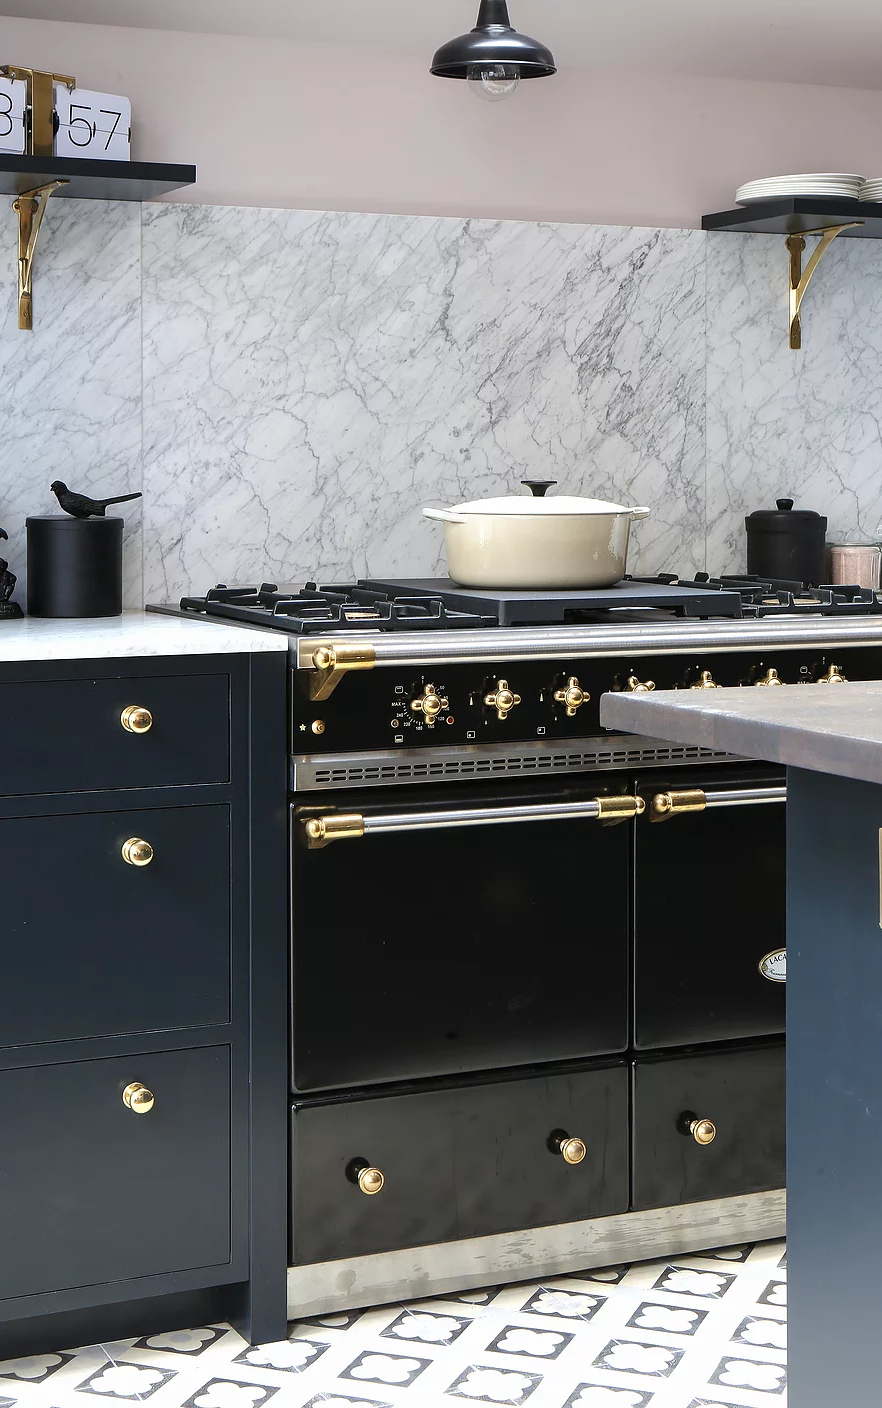 1553970809 316 amazing kitchen design with touches of gold - Amazing Kitchen Design With Touches Of Gold